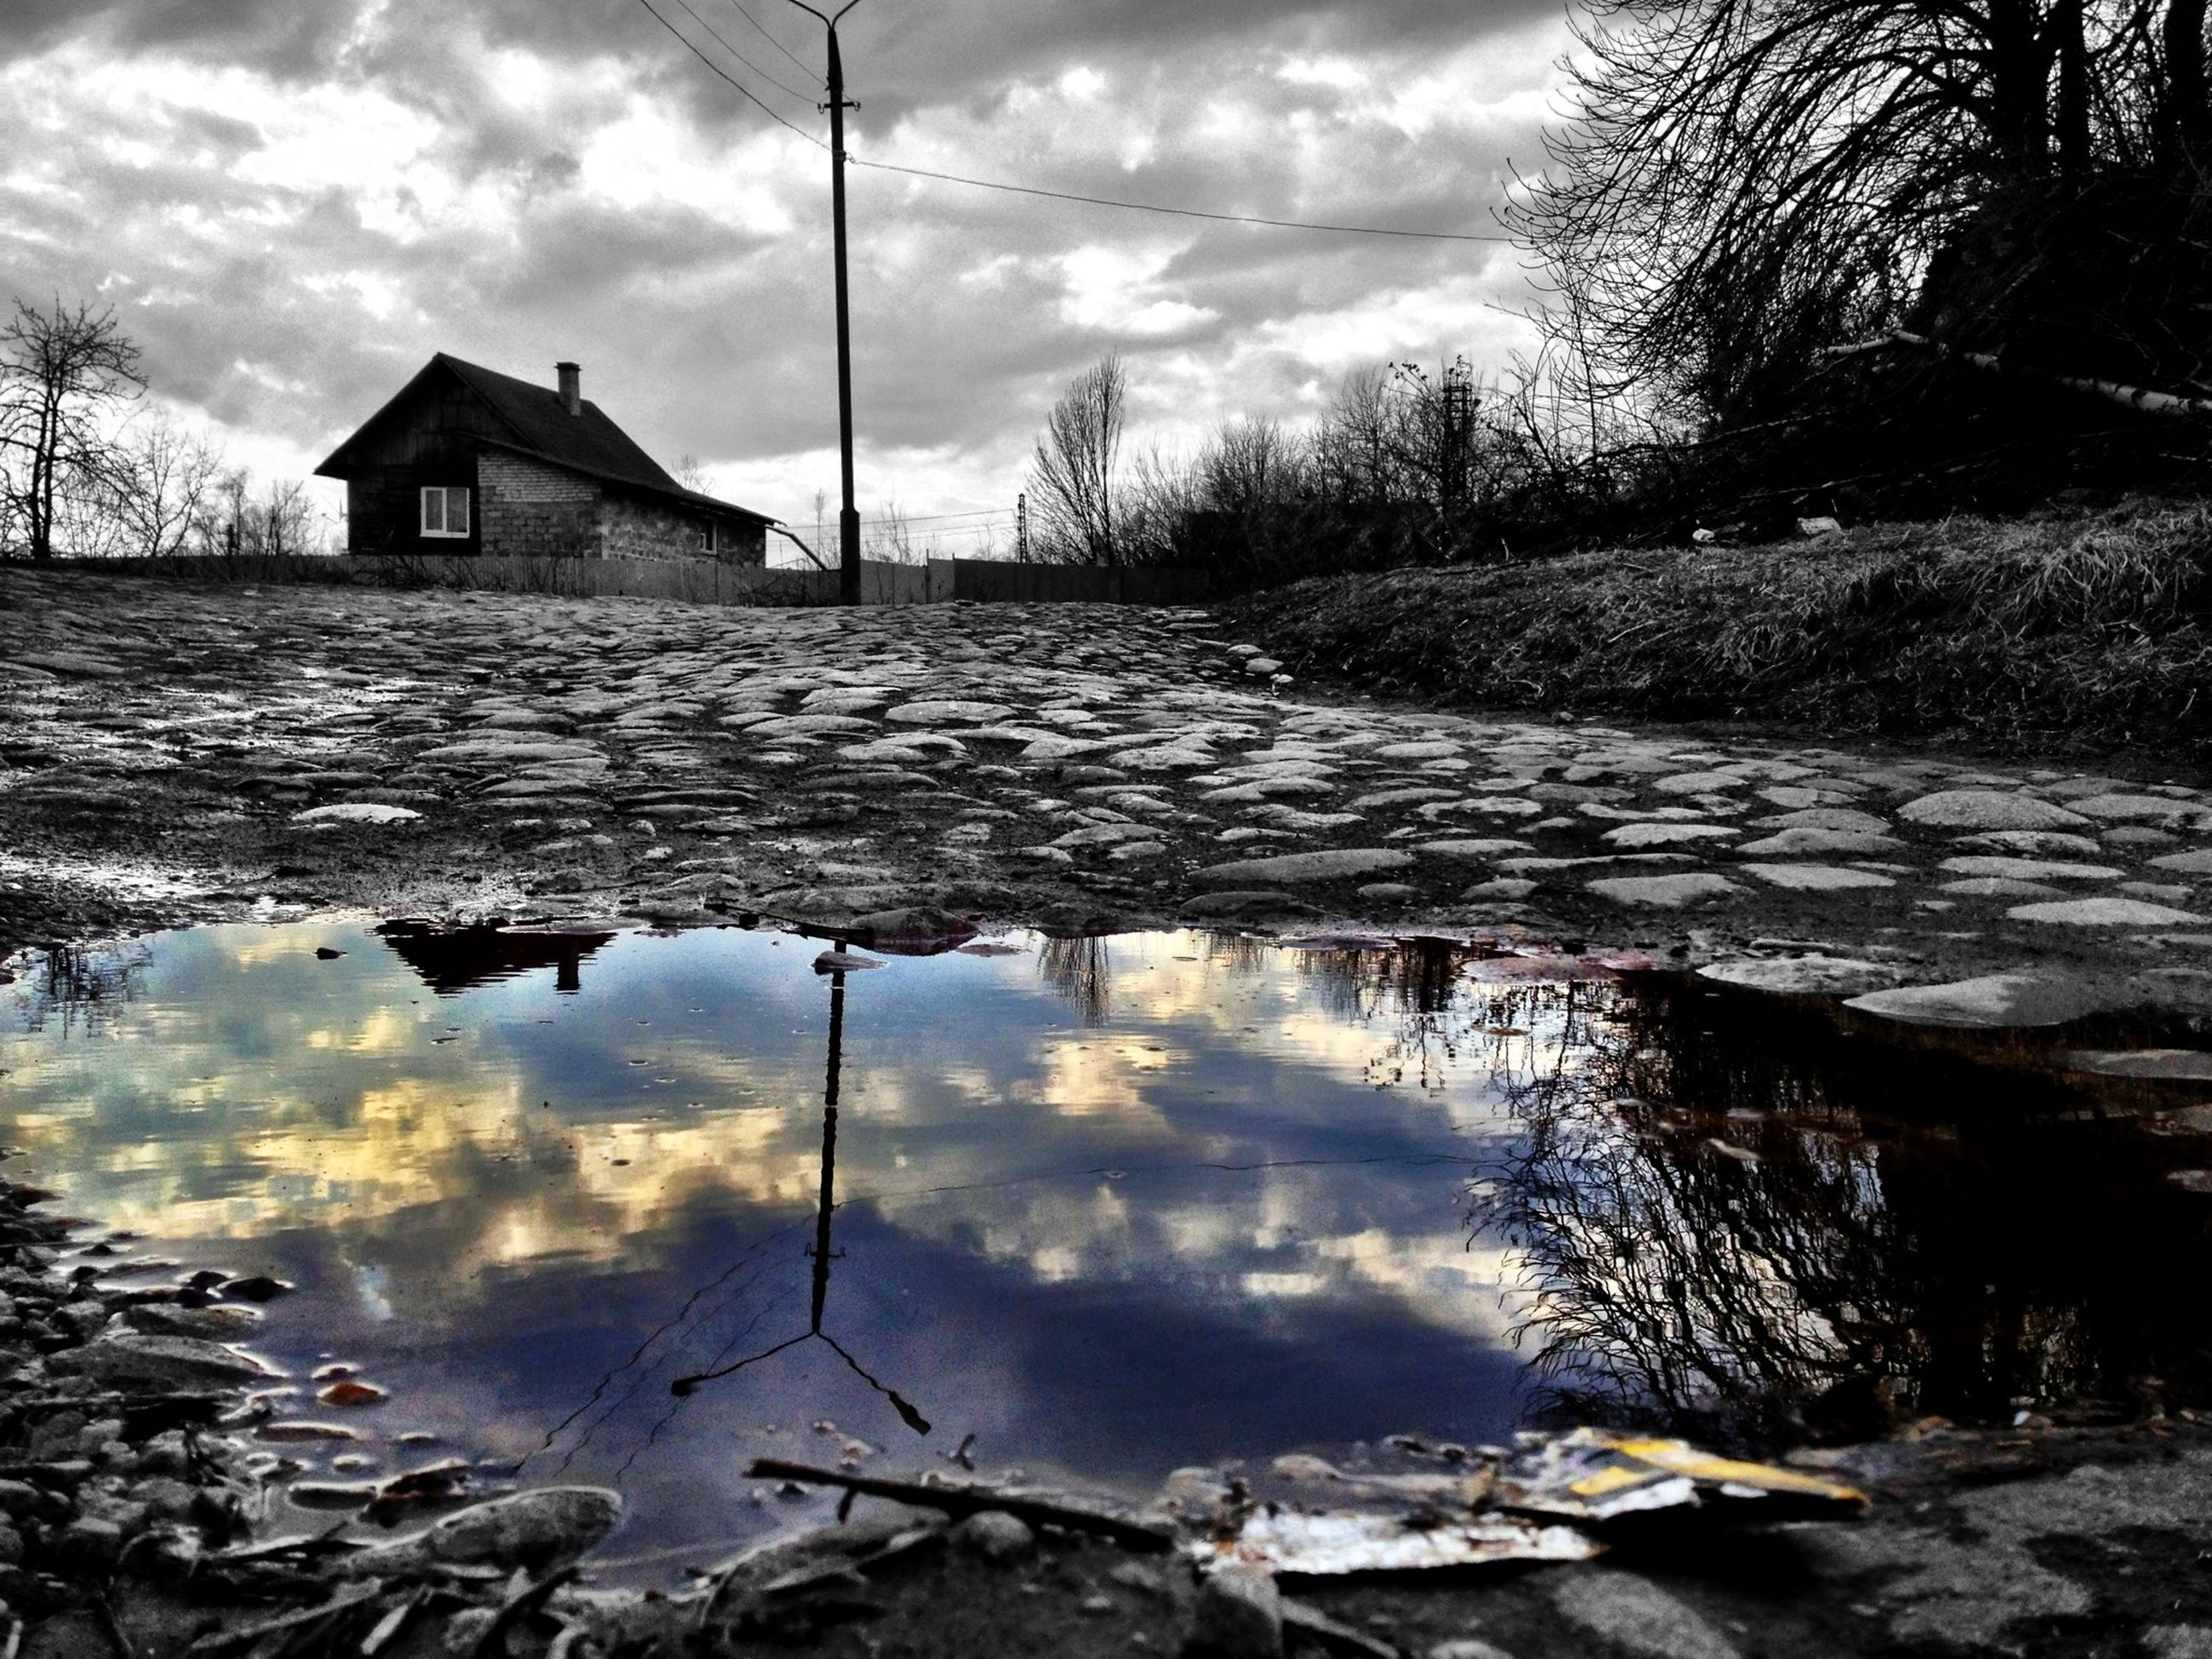 water, reflection, sky, cloud - sky, lake, built structure, building exterior, cloud, architecture, tranquility, tranquil scene, tree, cloudy, nature, scenics, river, beauty in nature, house, day, puddle